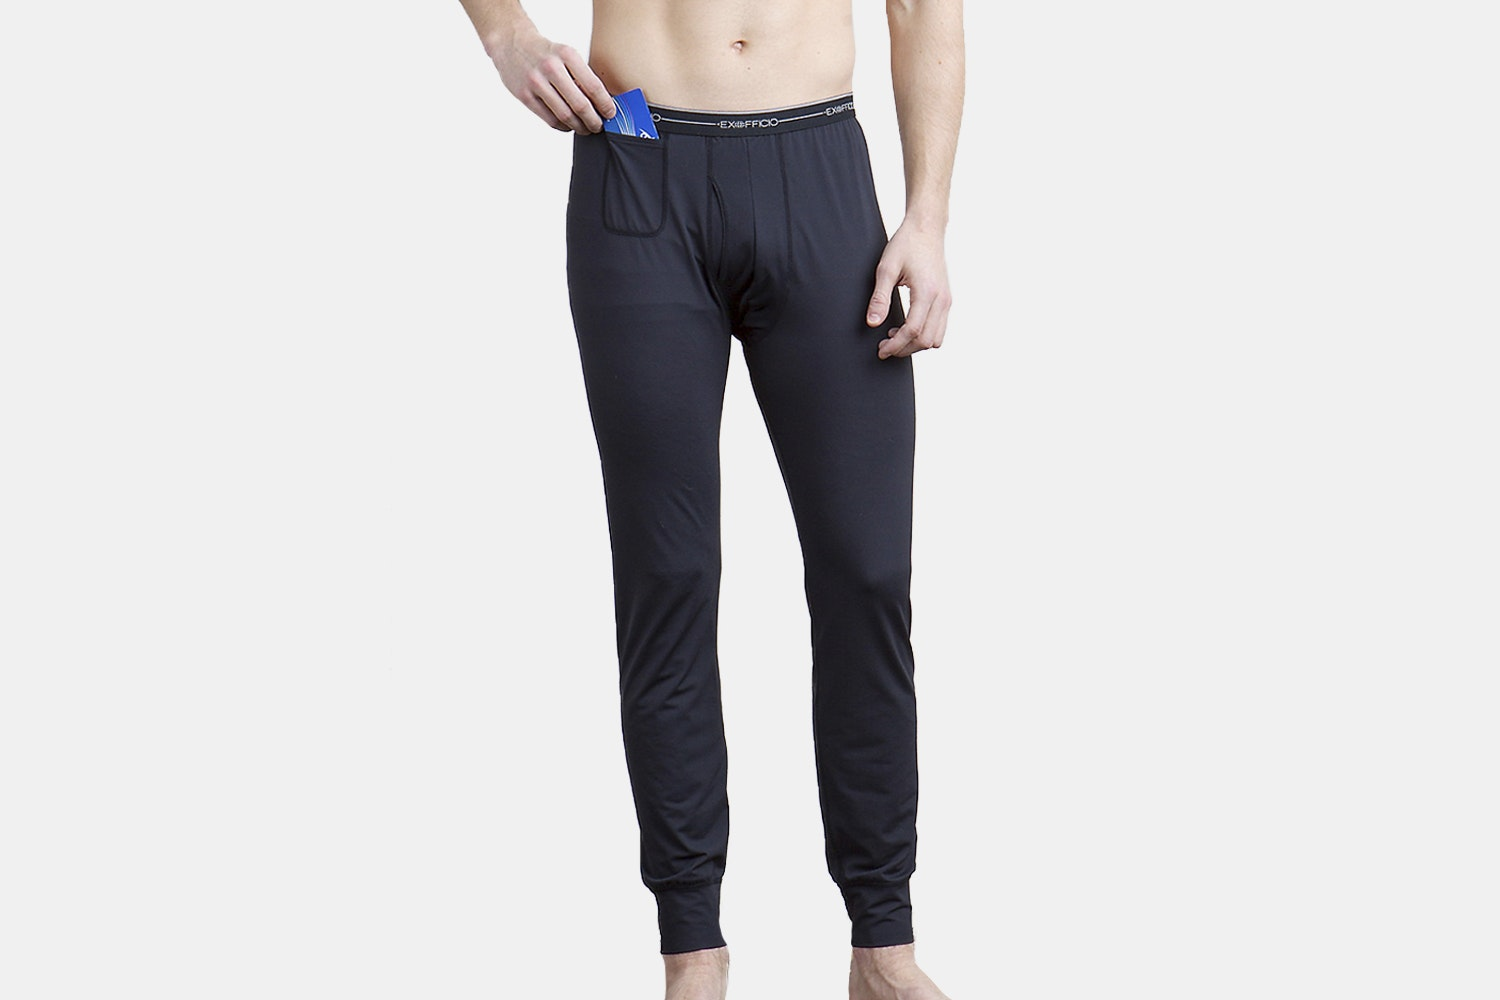 Men's bottoms – black